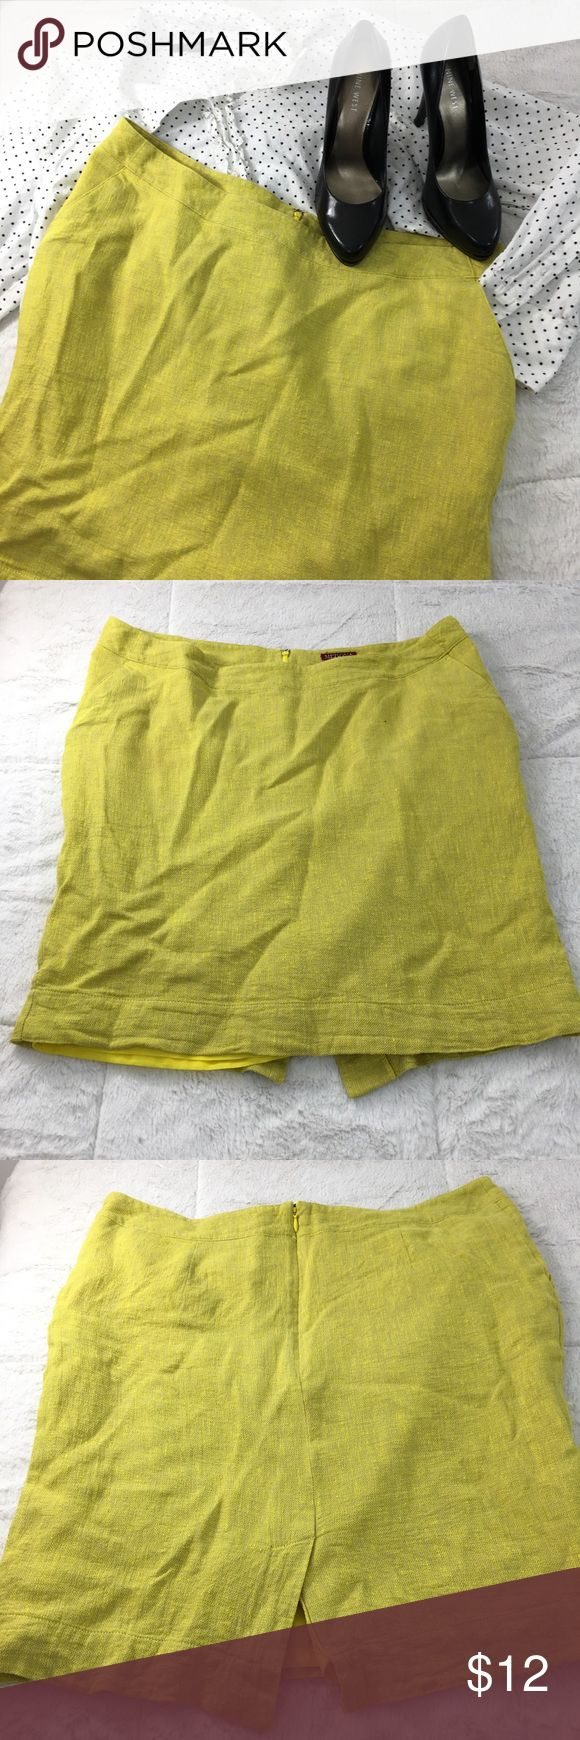 Neon Yellow & Tan Linen Texture Pencil Skirt This statement skirt has it all- a stunning neon yellow fiber mixed with a neutral tan fiber to create a linen-like texture, it's fully lined, and it has pockets! Paired with other listings- a size XL Tommy Hilfiger Polka Dot Ruffle shirt, & size 6 Nine West black heels. Merona Skirts Pencil